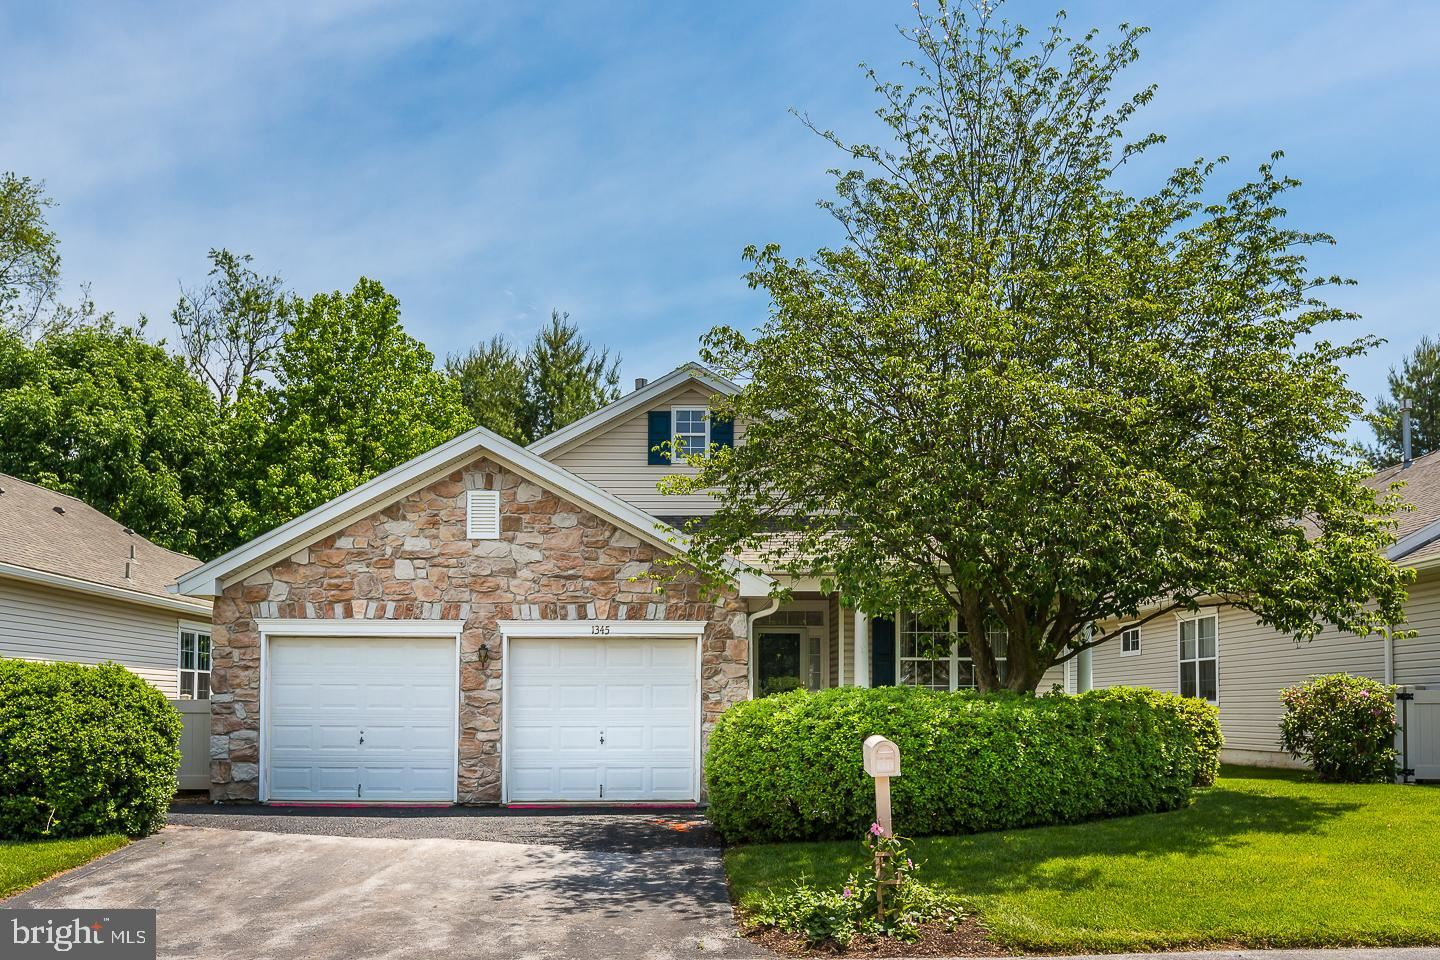 1345 TROON LN, West Chester, PA 19380 - #: PACT507820